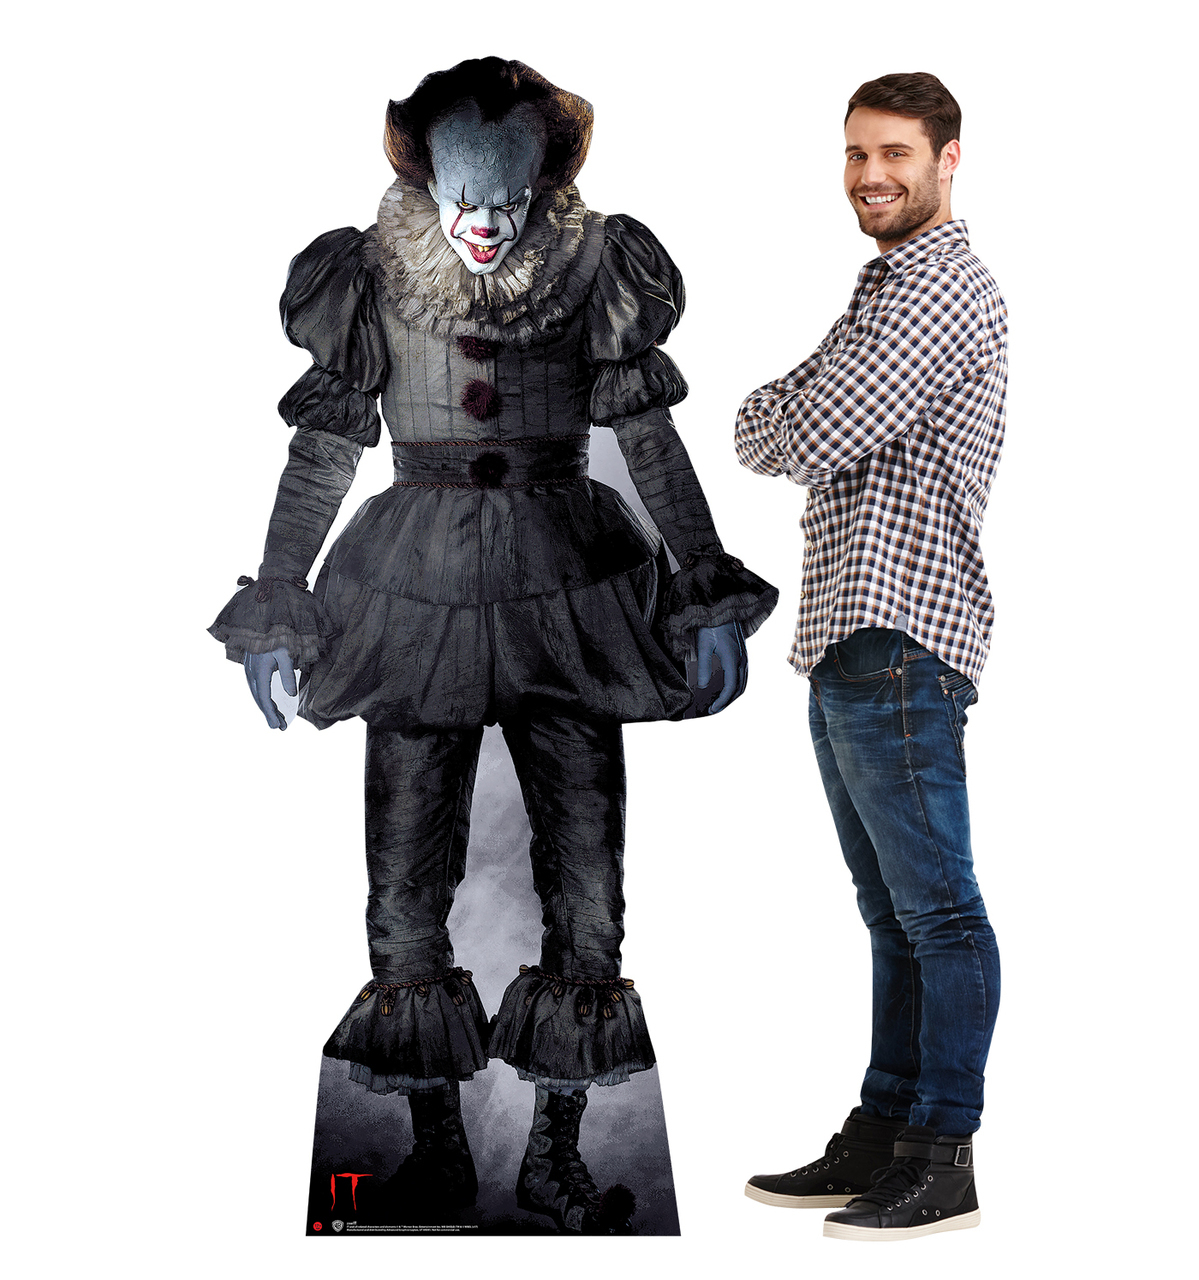 IT PENNYWISE CLOWN STEPHEN KING LIFESIZE CARDBOARD STANDUP CUTOUT LICENSED 2568